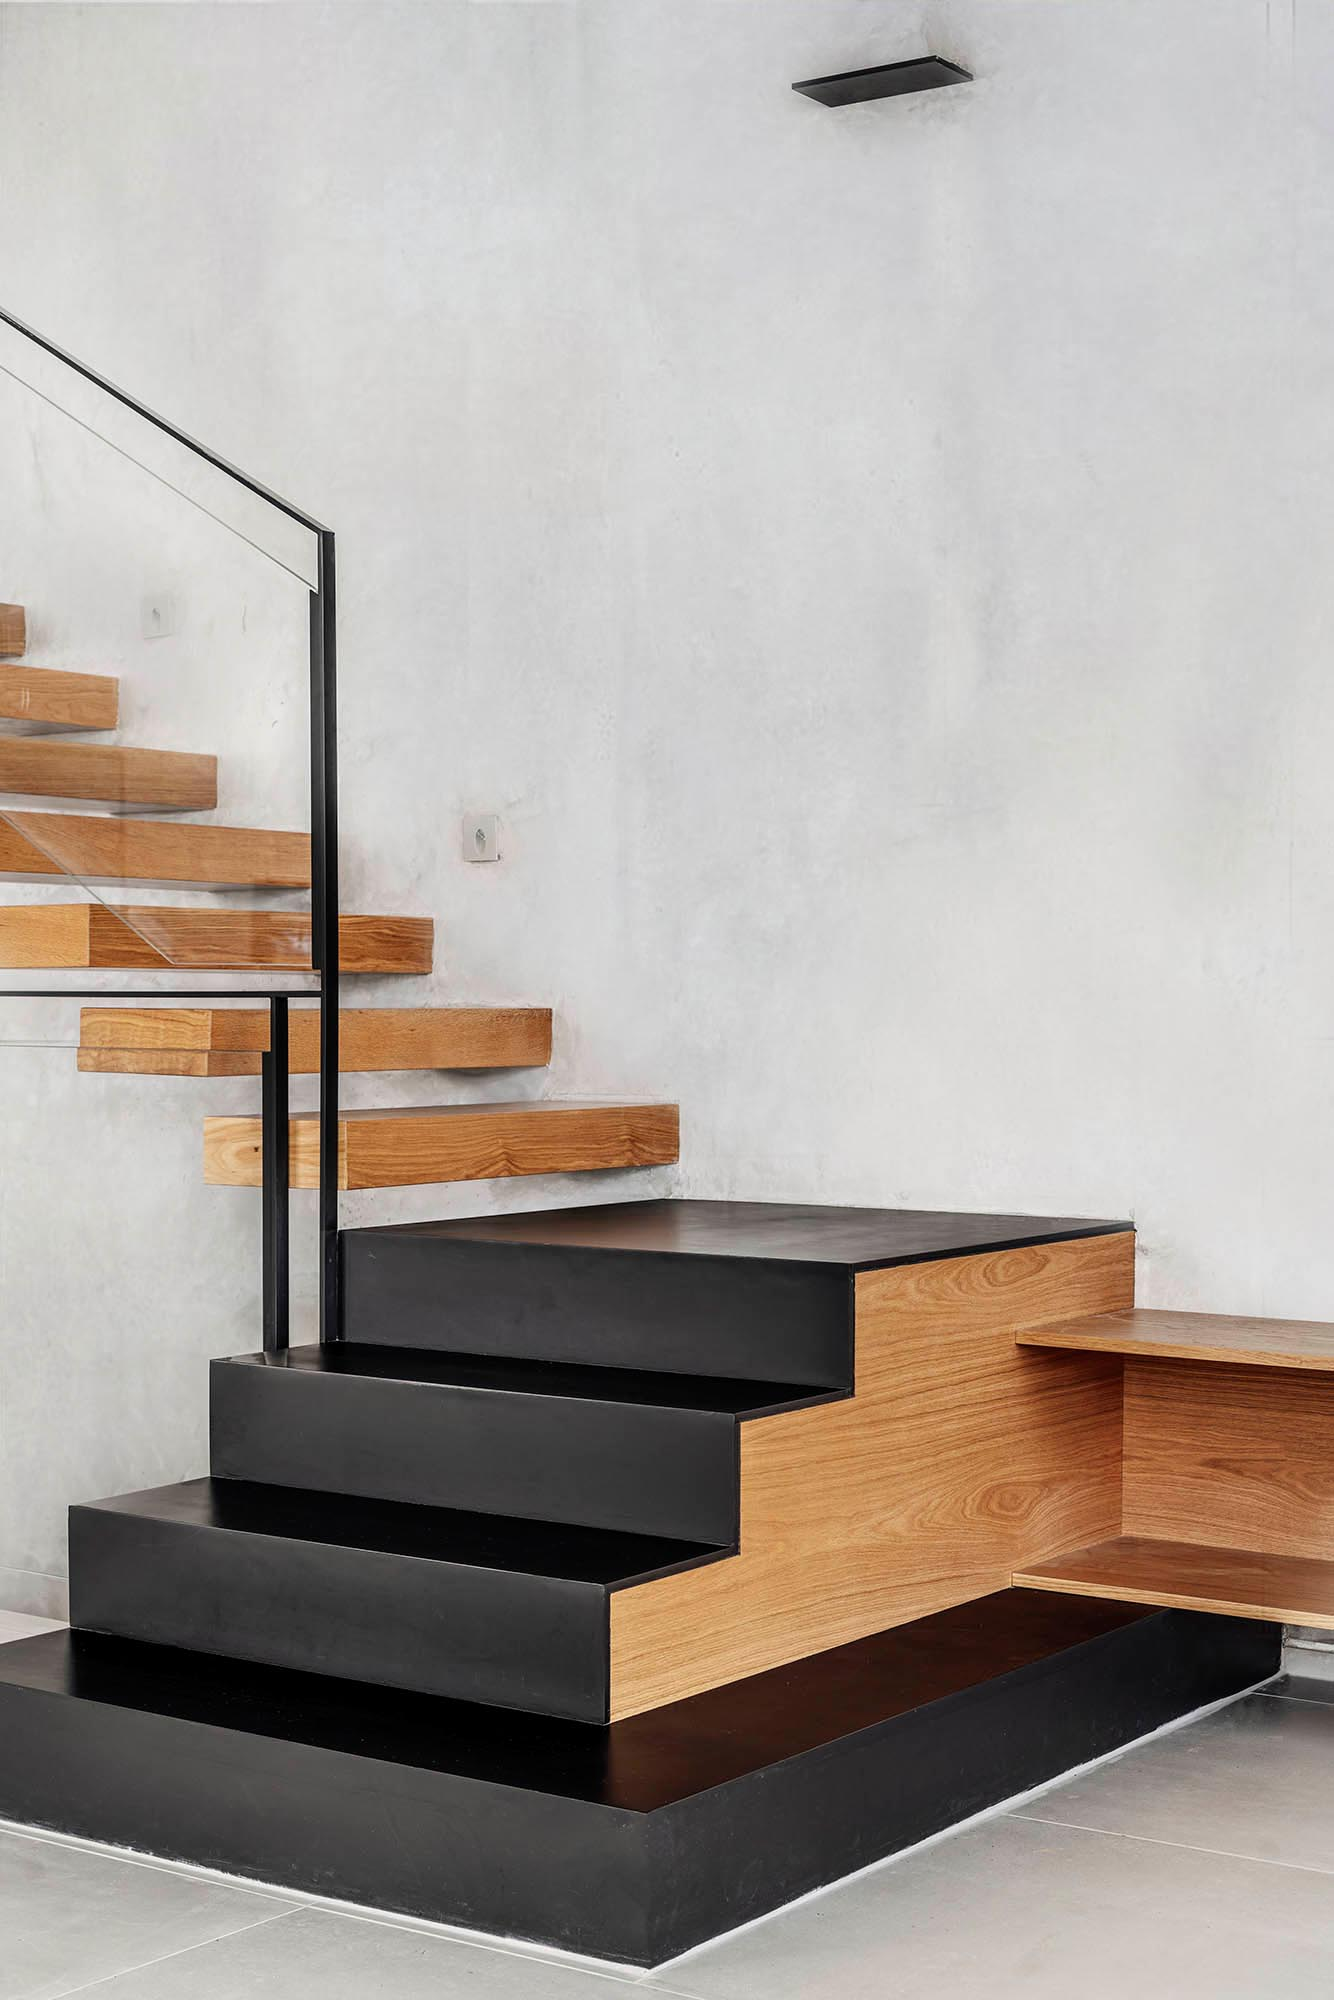 A floating oak staircase connects the various levels of this modern home, incorporates black iron stairs at the bottom, and transitions to become the TV sideboard in the living room.